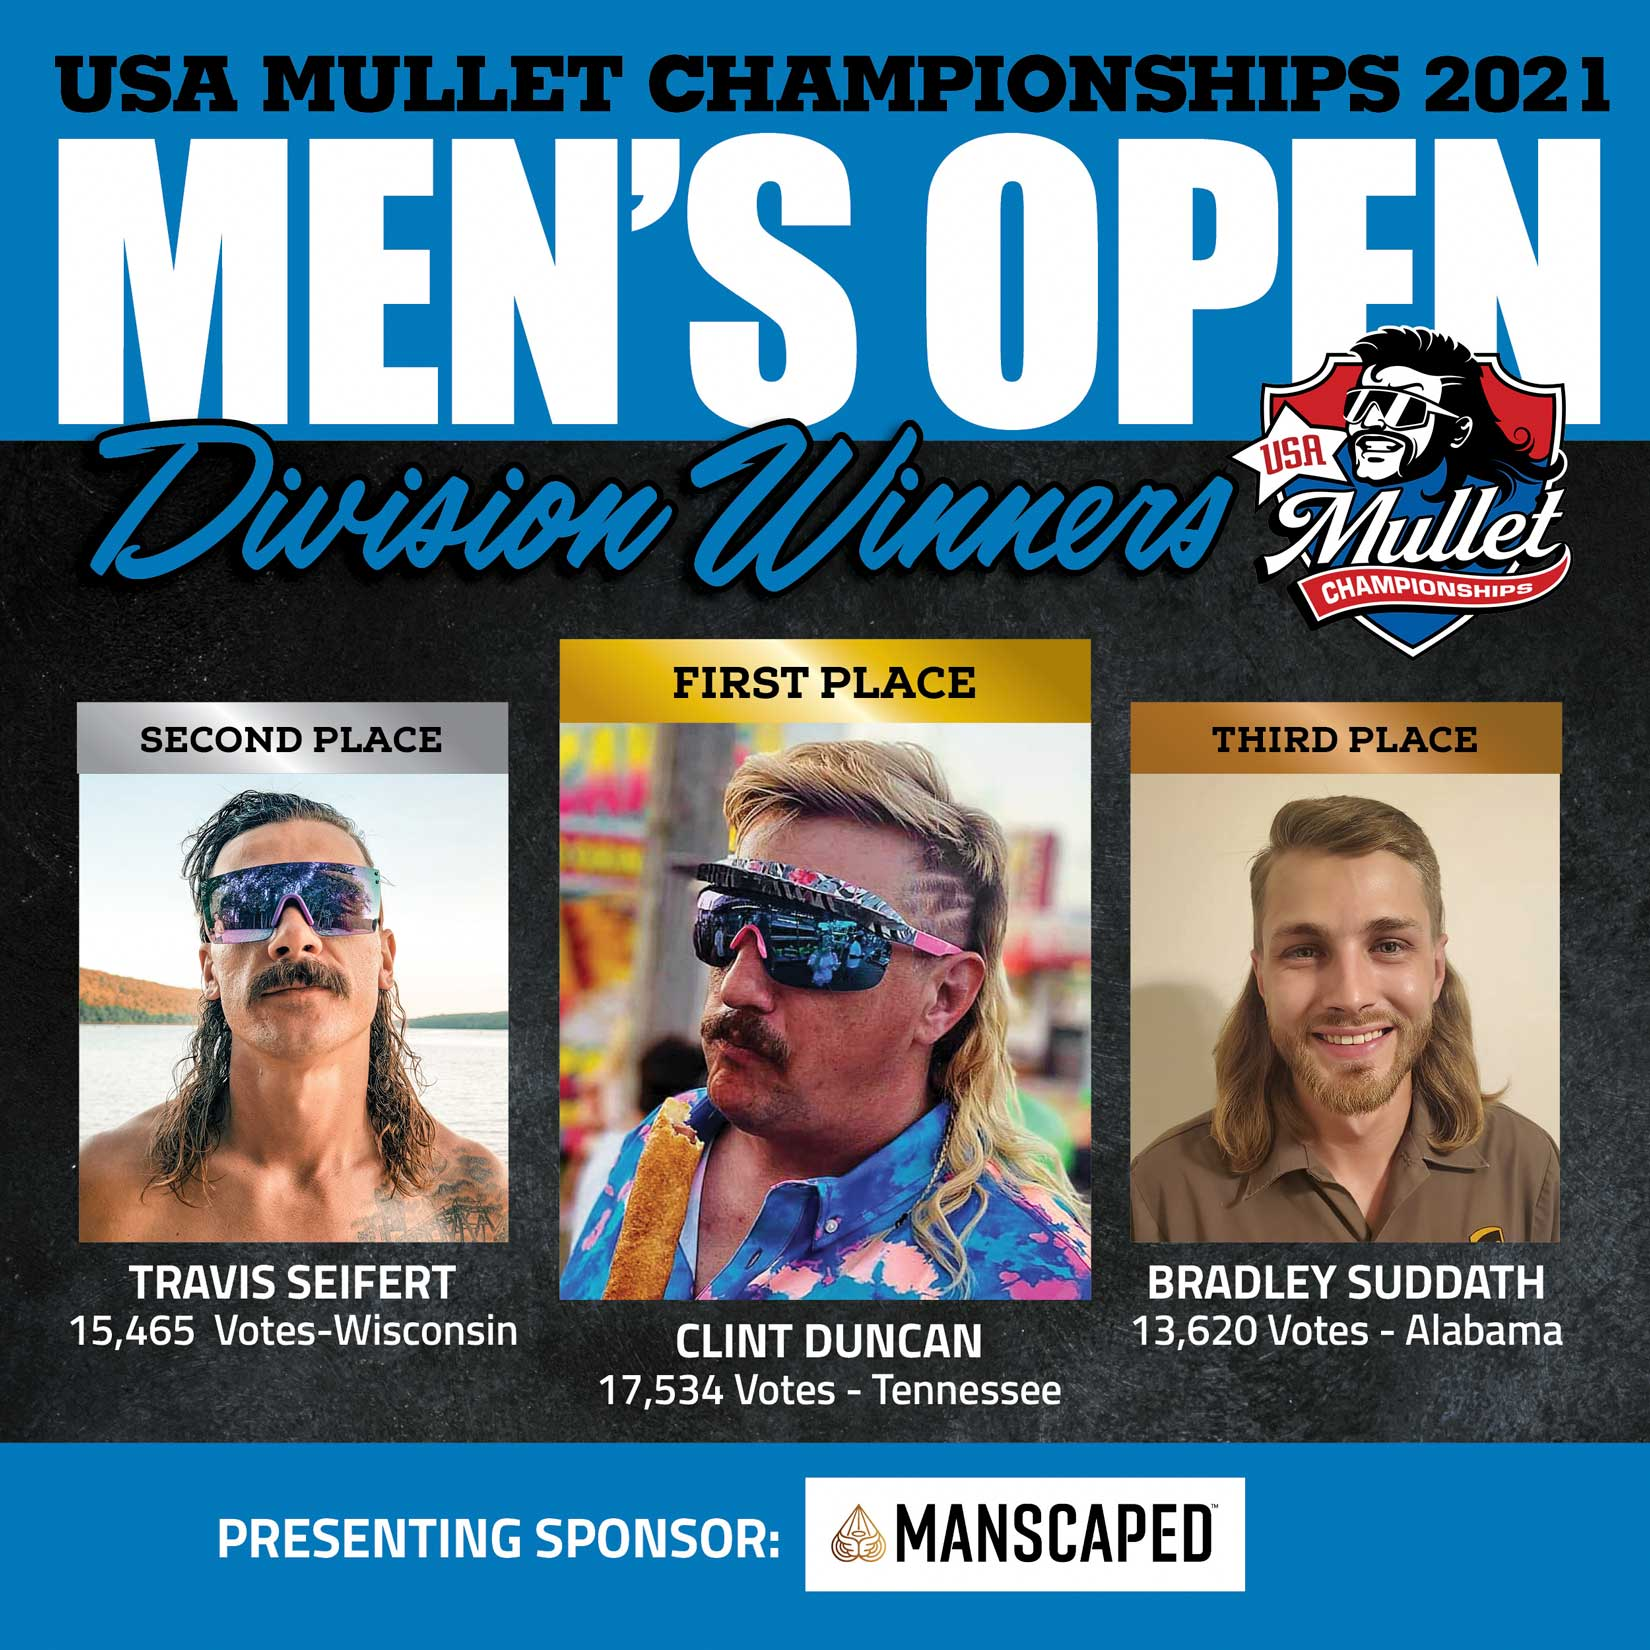 Mullet Champ USA Mens Open Division 2021 Top 3